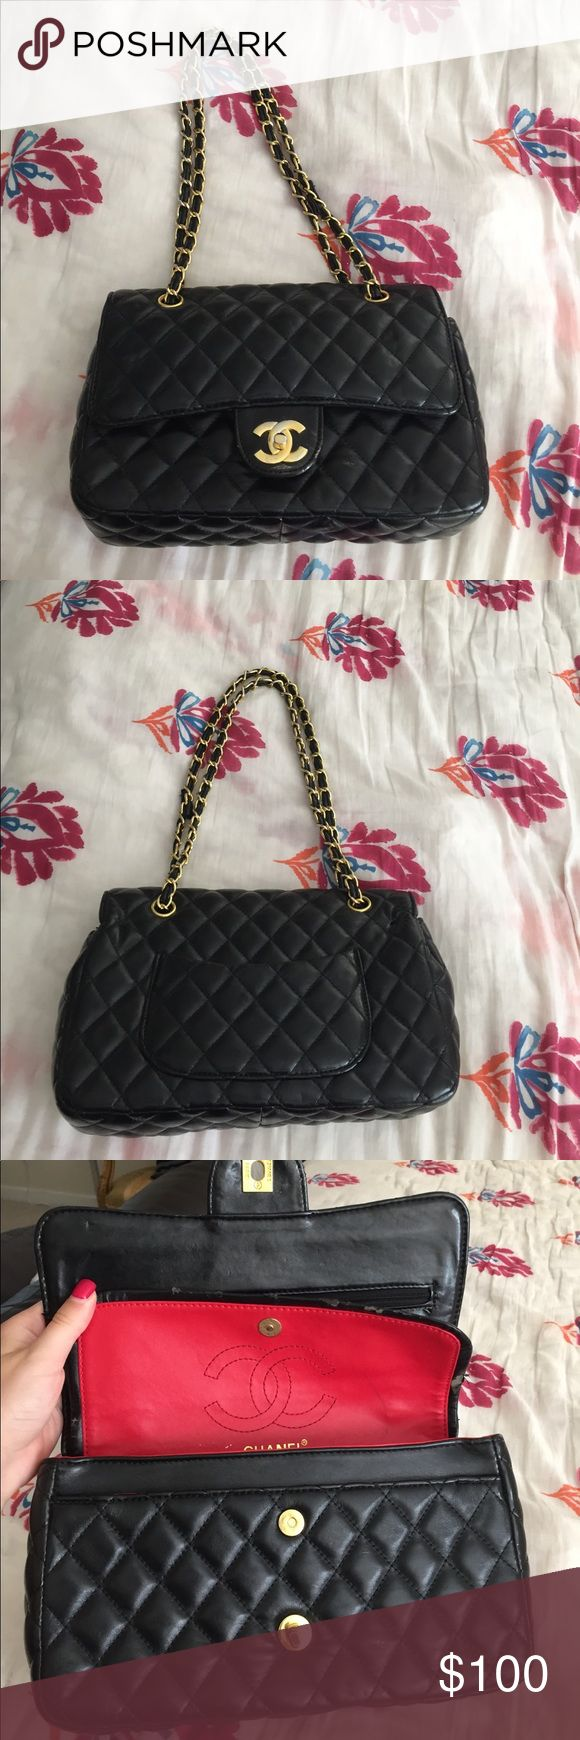 Chanel handbag NOT AUTHENTIC!! Real leather. Gold hardware. Can wear as crossbody or regular shoulder bag. Has only been carried twice for two occasions. Handbag measurements are 10.5L x 3W x 7H. NO TRADES!!! Does have some peeling in picture 3. Bags Shoulder Bags